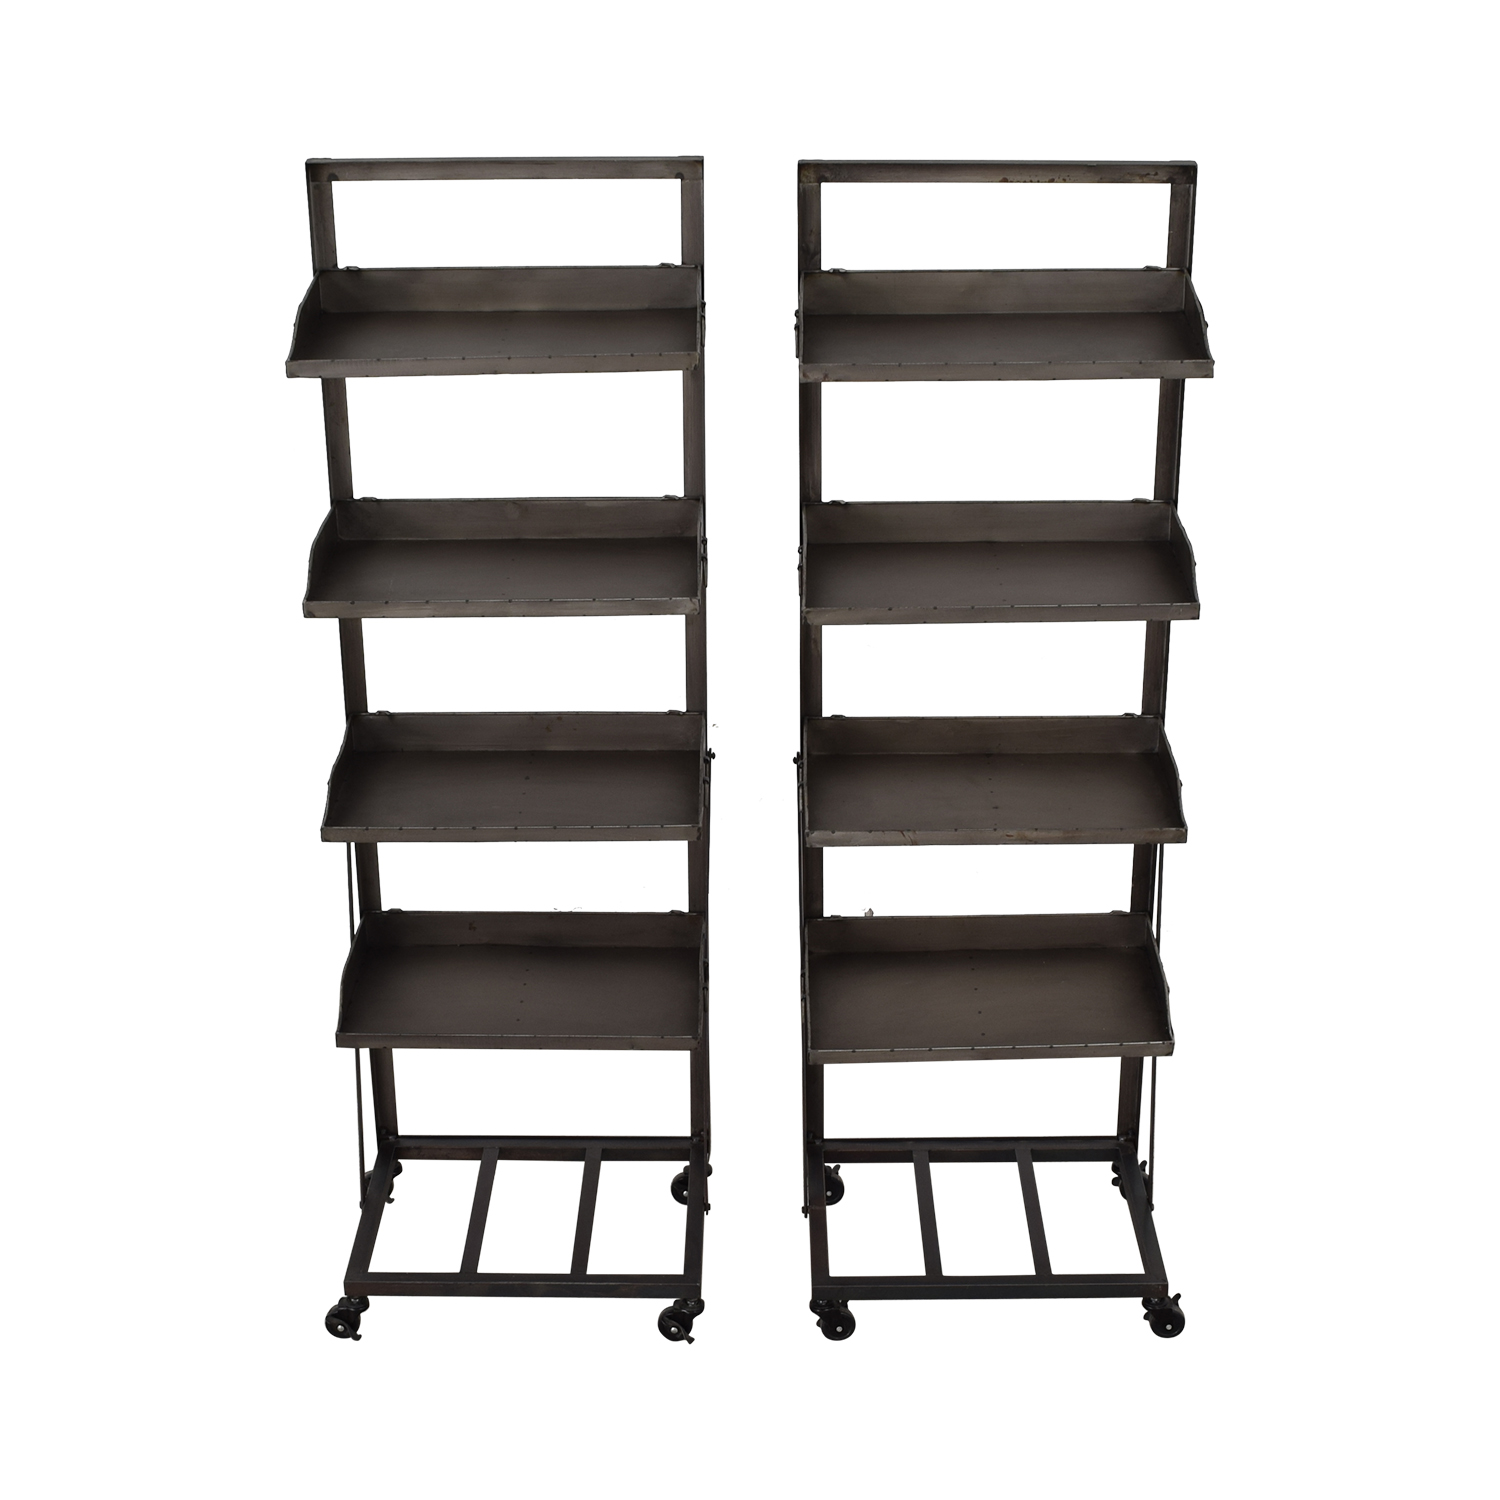 Bookshelves with Wheels dimensions